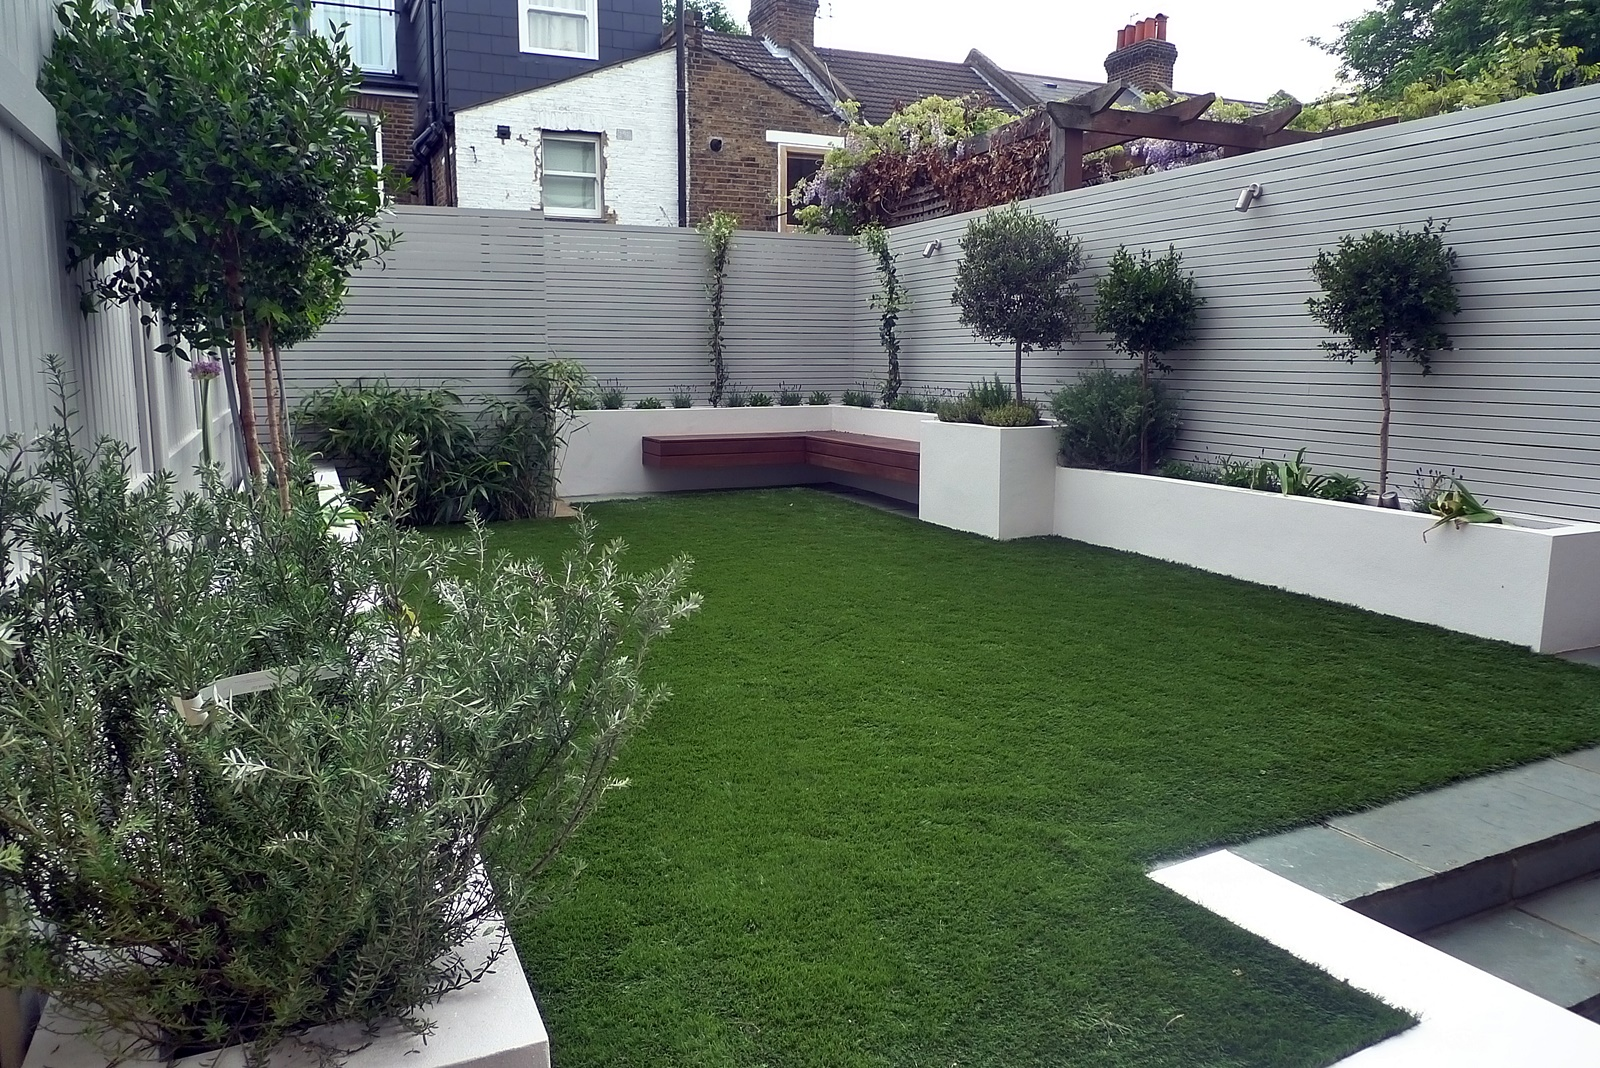 London garden blog london garden blog gardens from for Modern landscape design